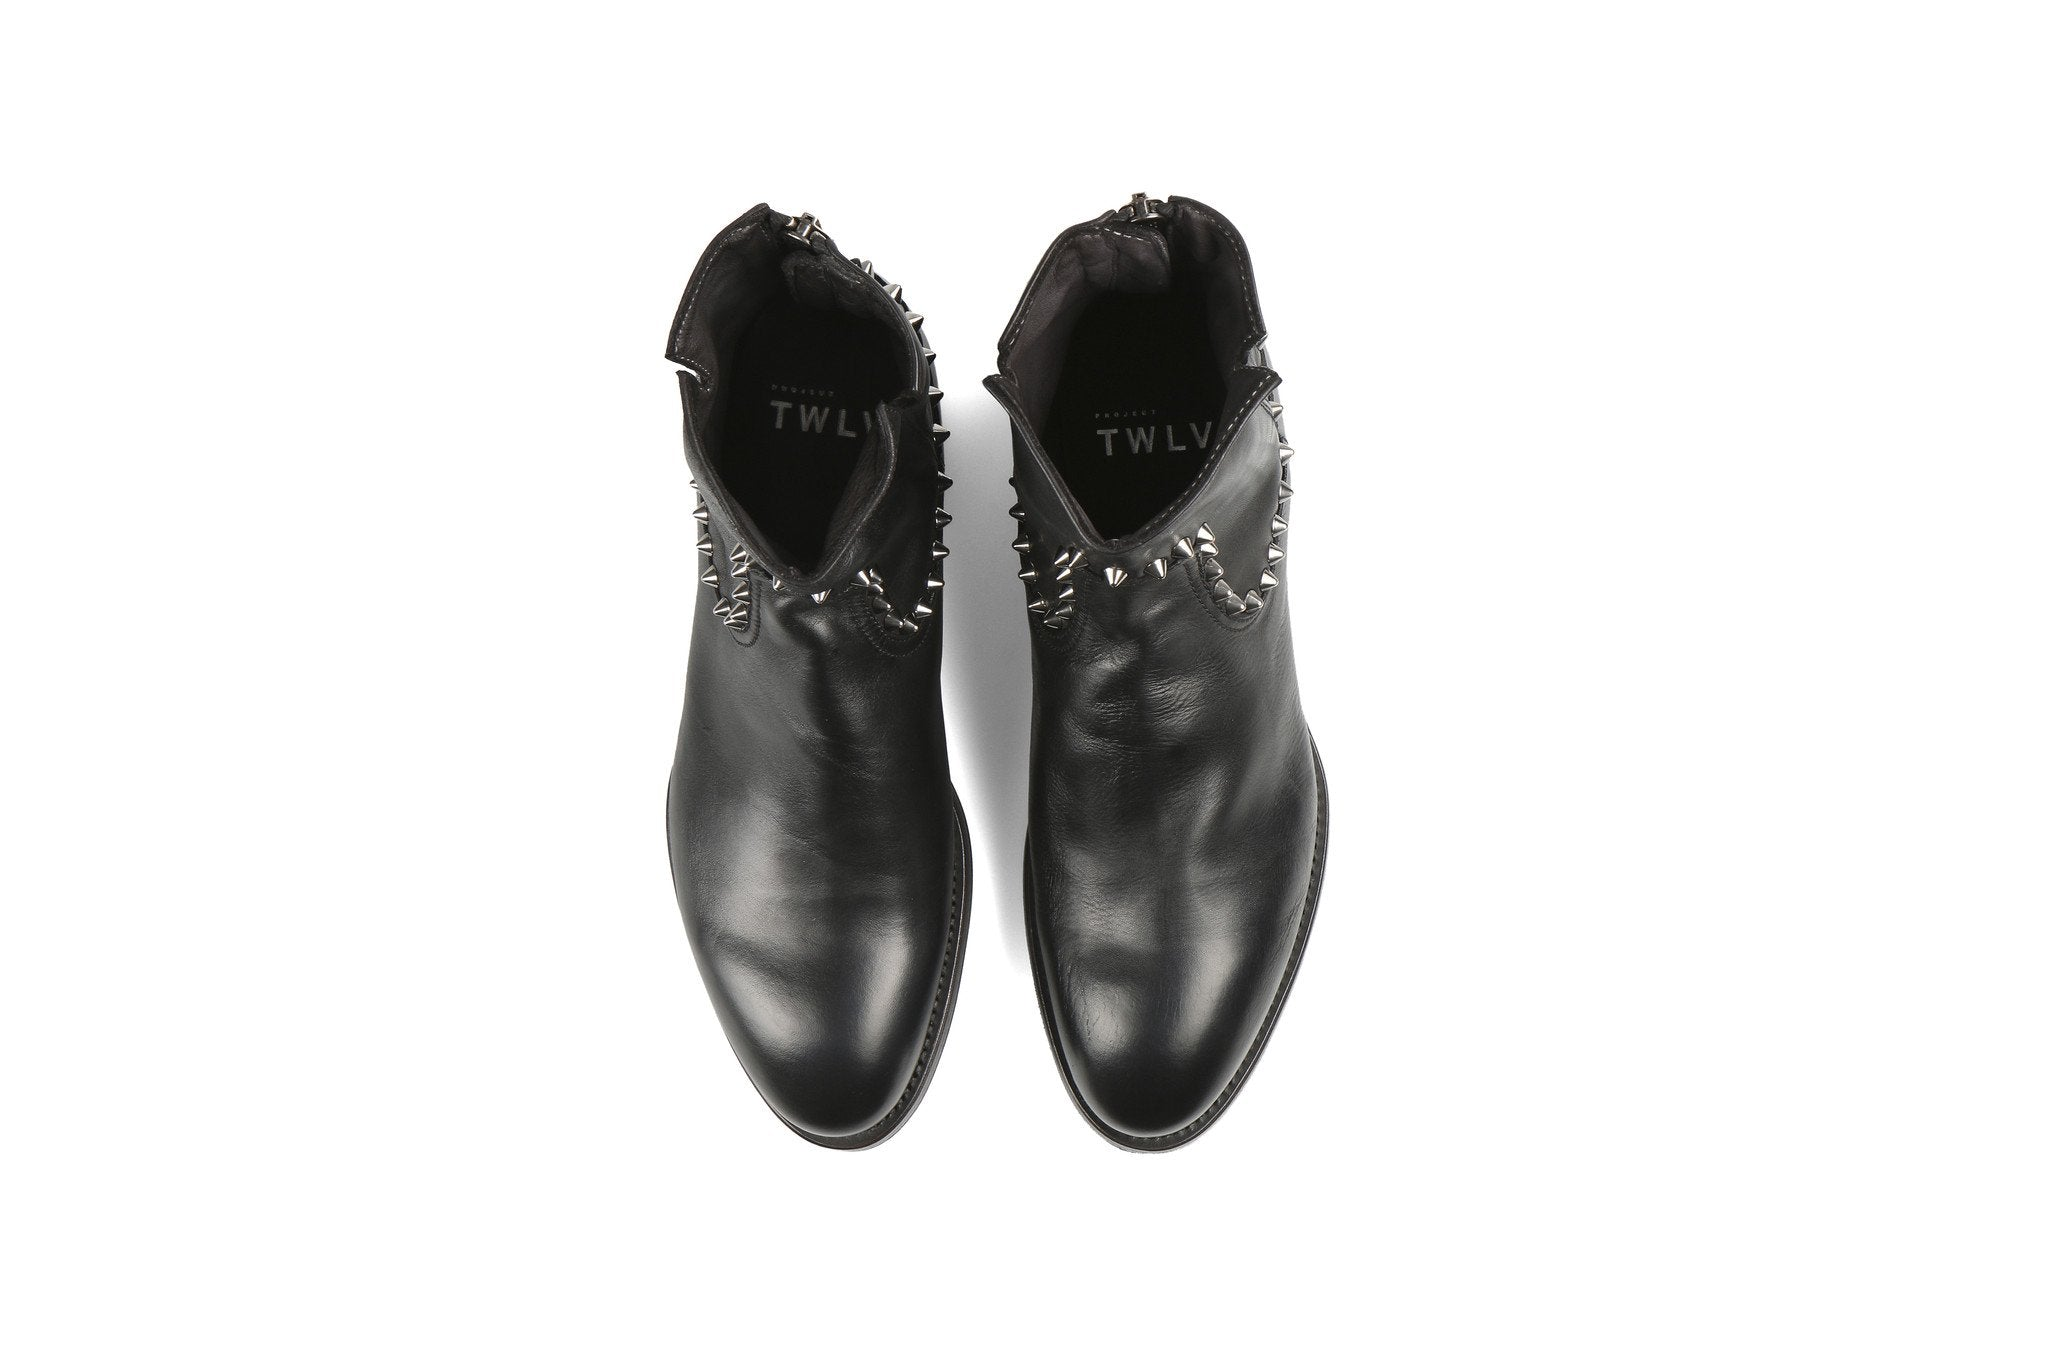 Flame Studs Black Cordovan Leather Zipper Boots